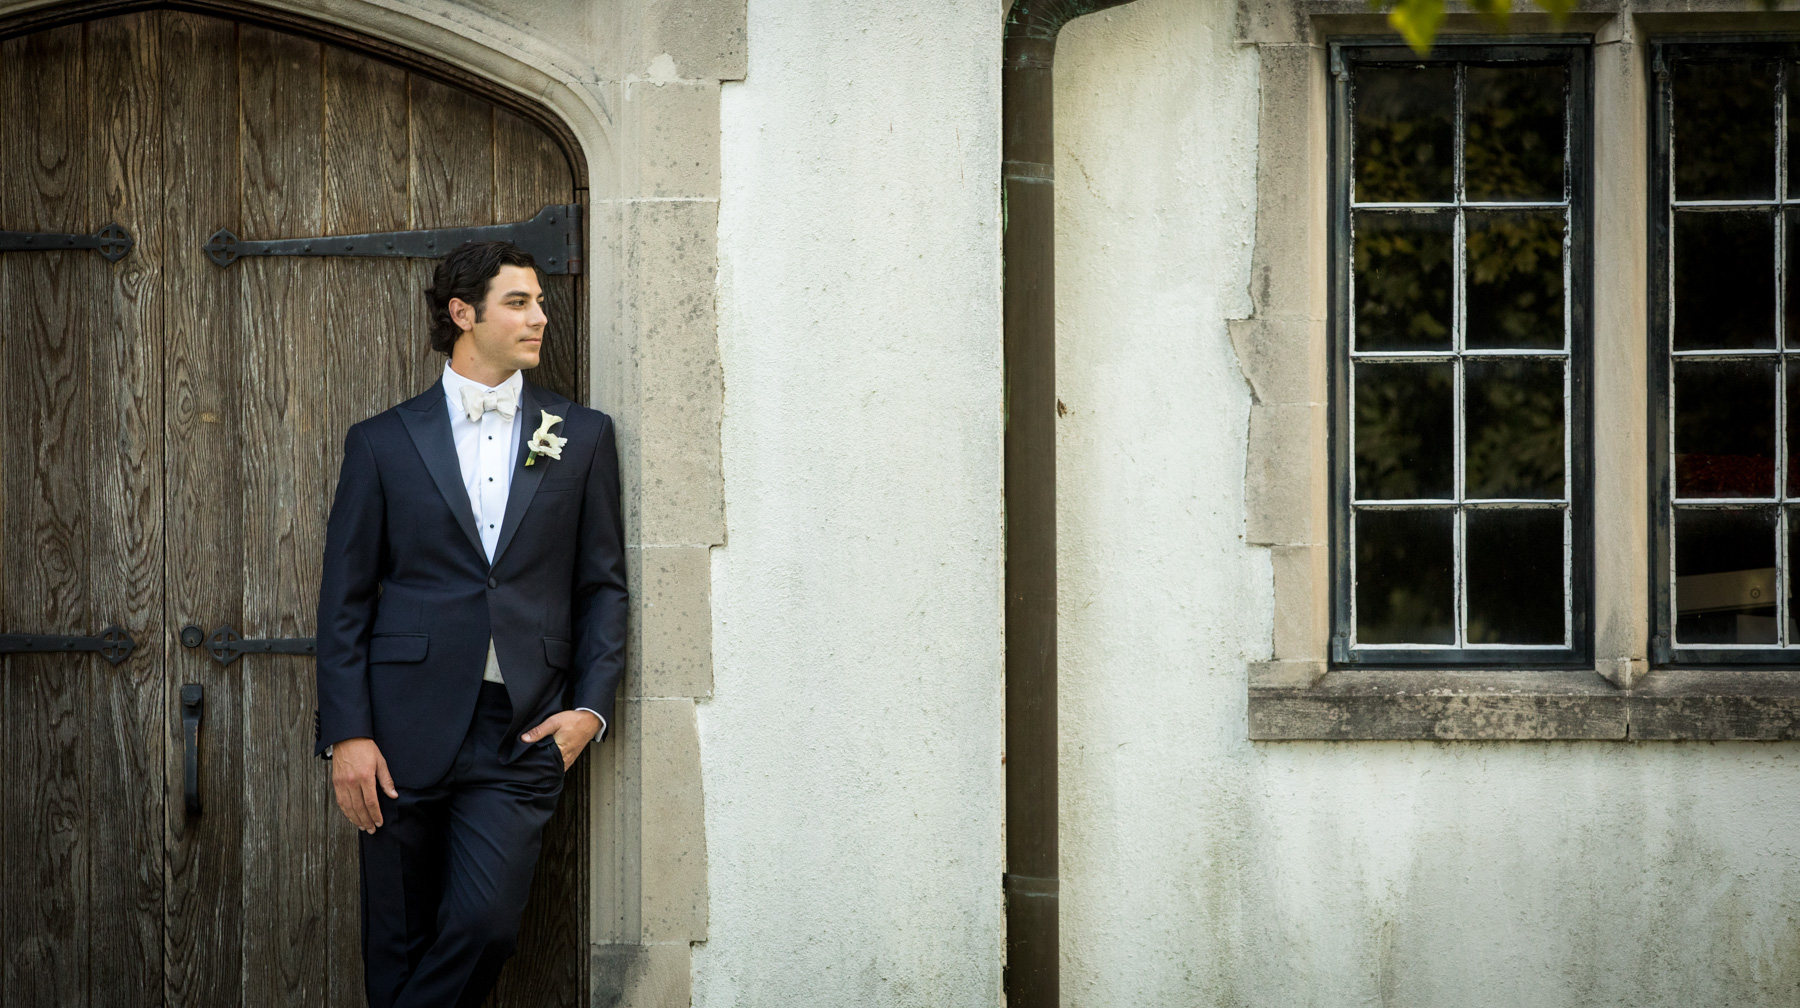 Reynolda Presbyterian Wedding Portrait